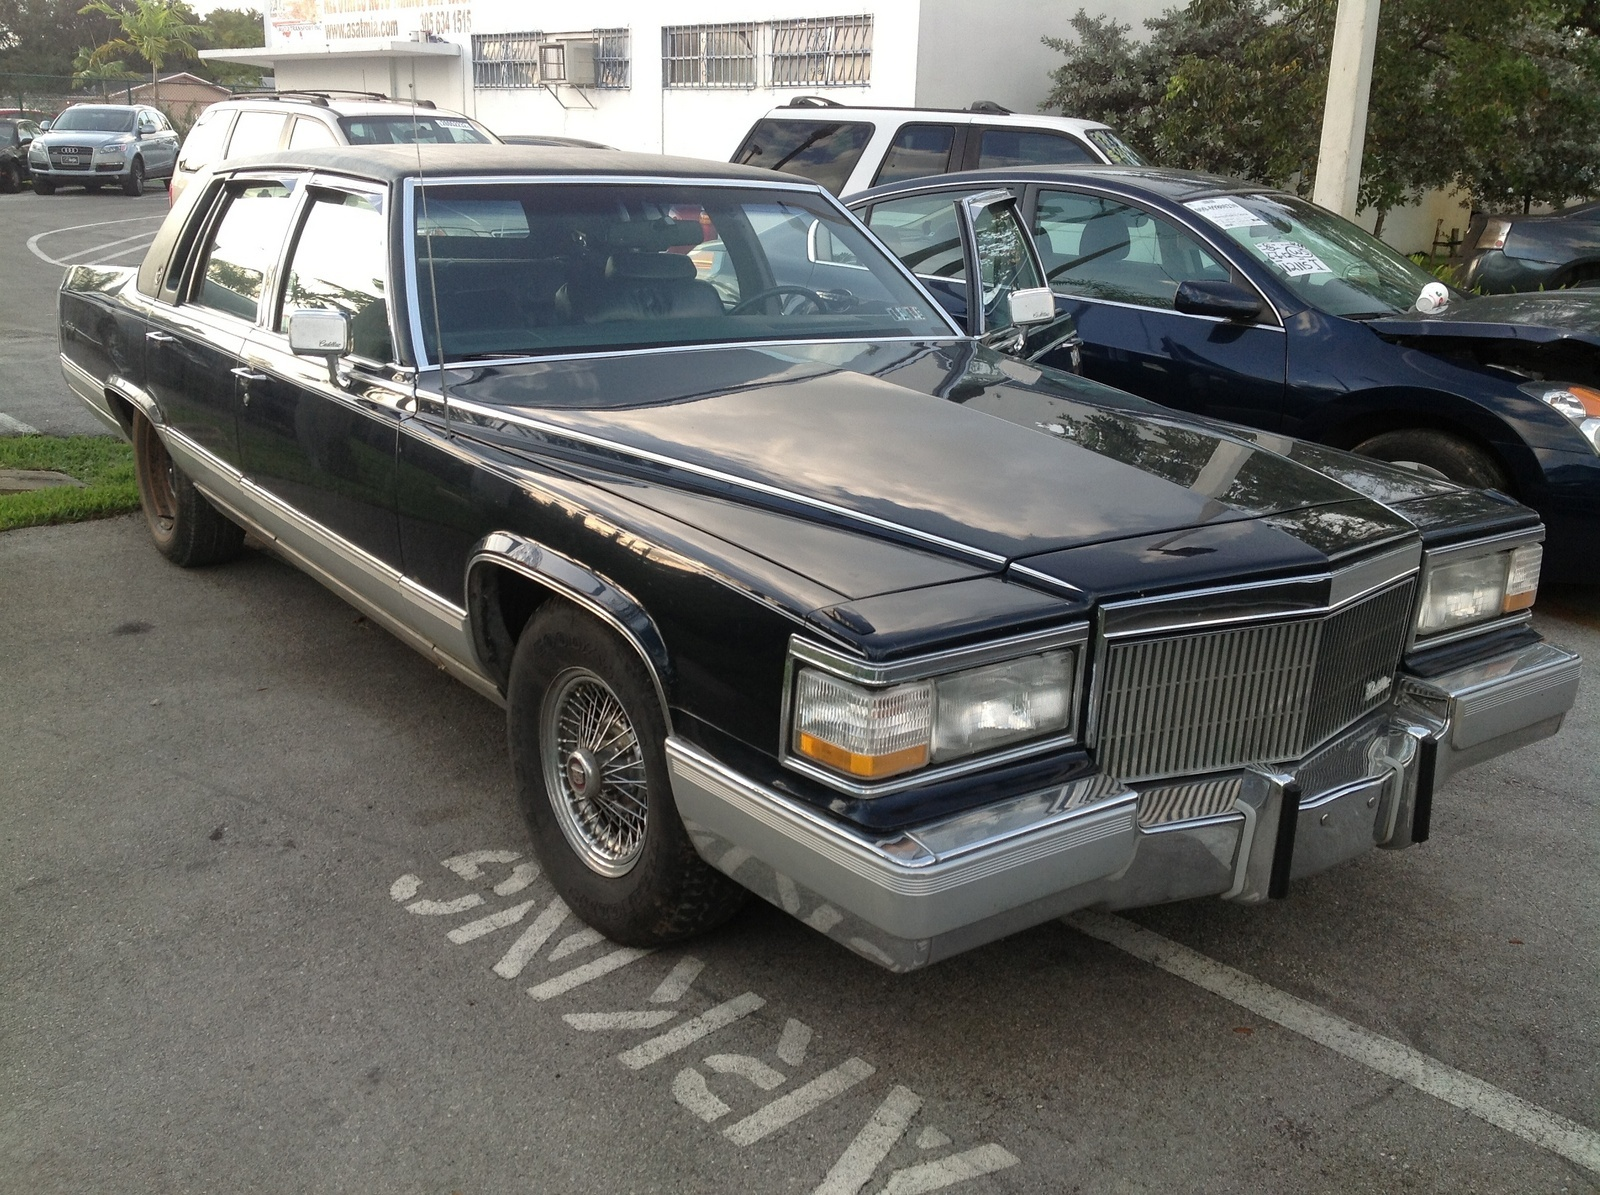 Cadillac Brougham Pic X